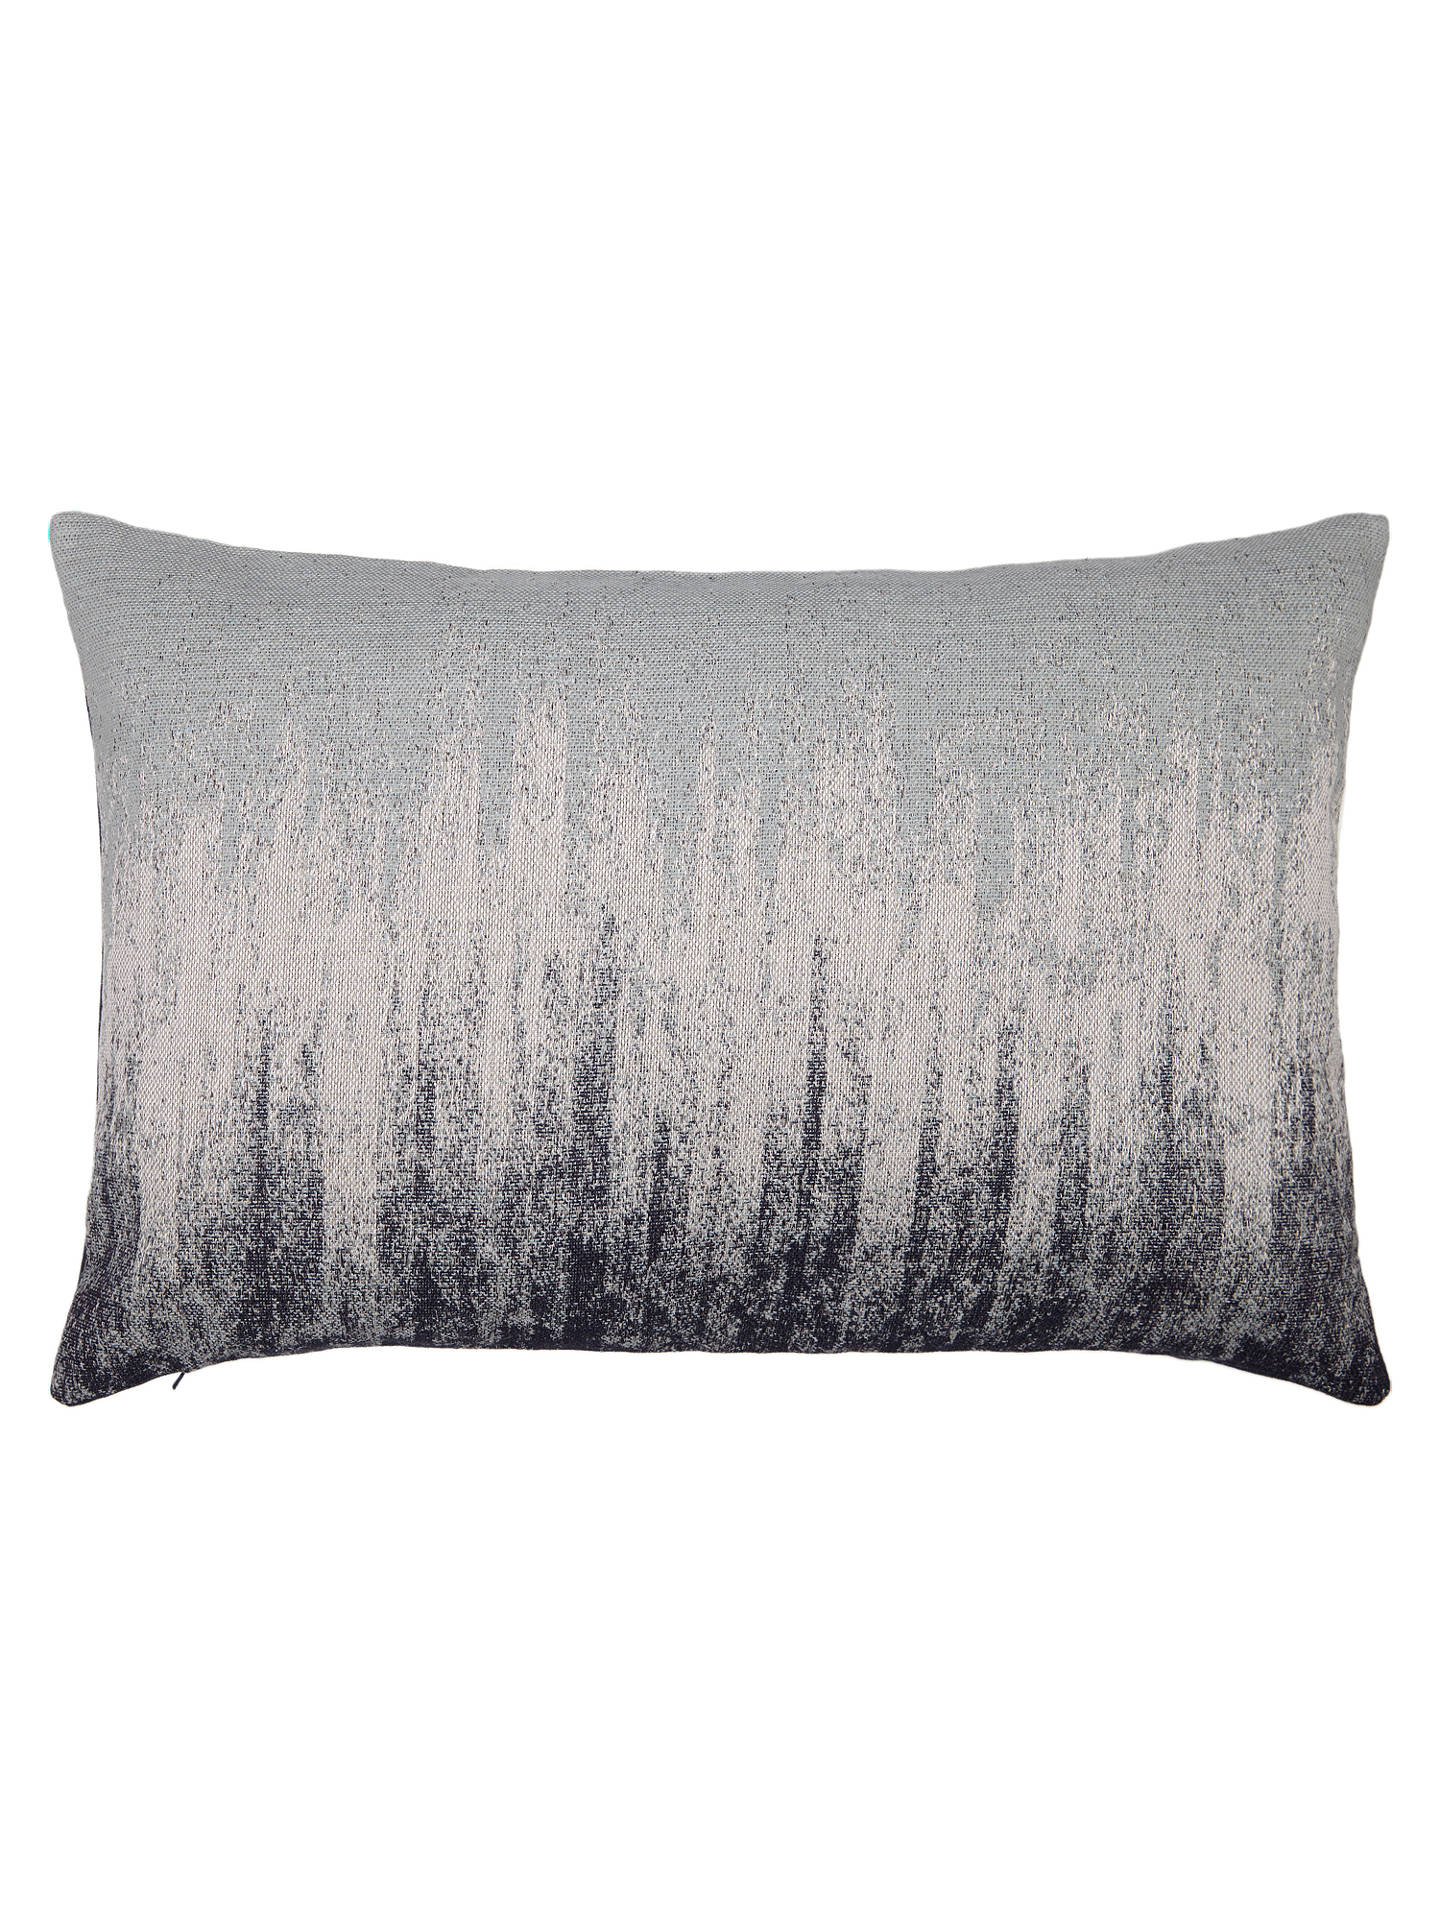 BuyDesign Project by John Lewis No.016 Cushion, Night Sky Online at johnlewis.com